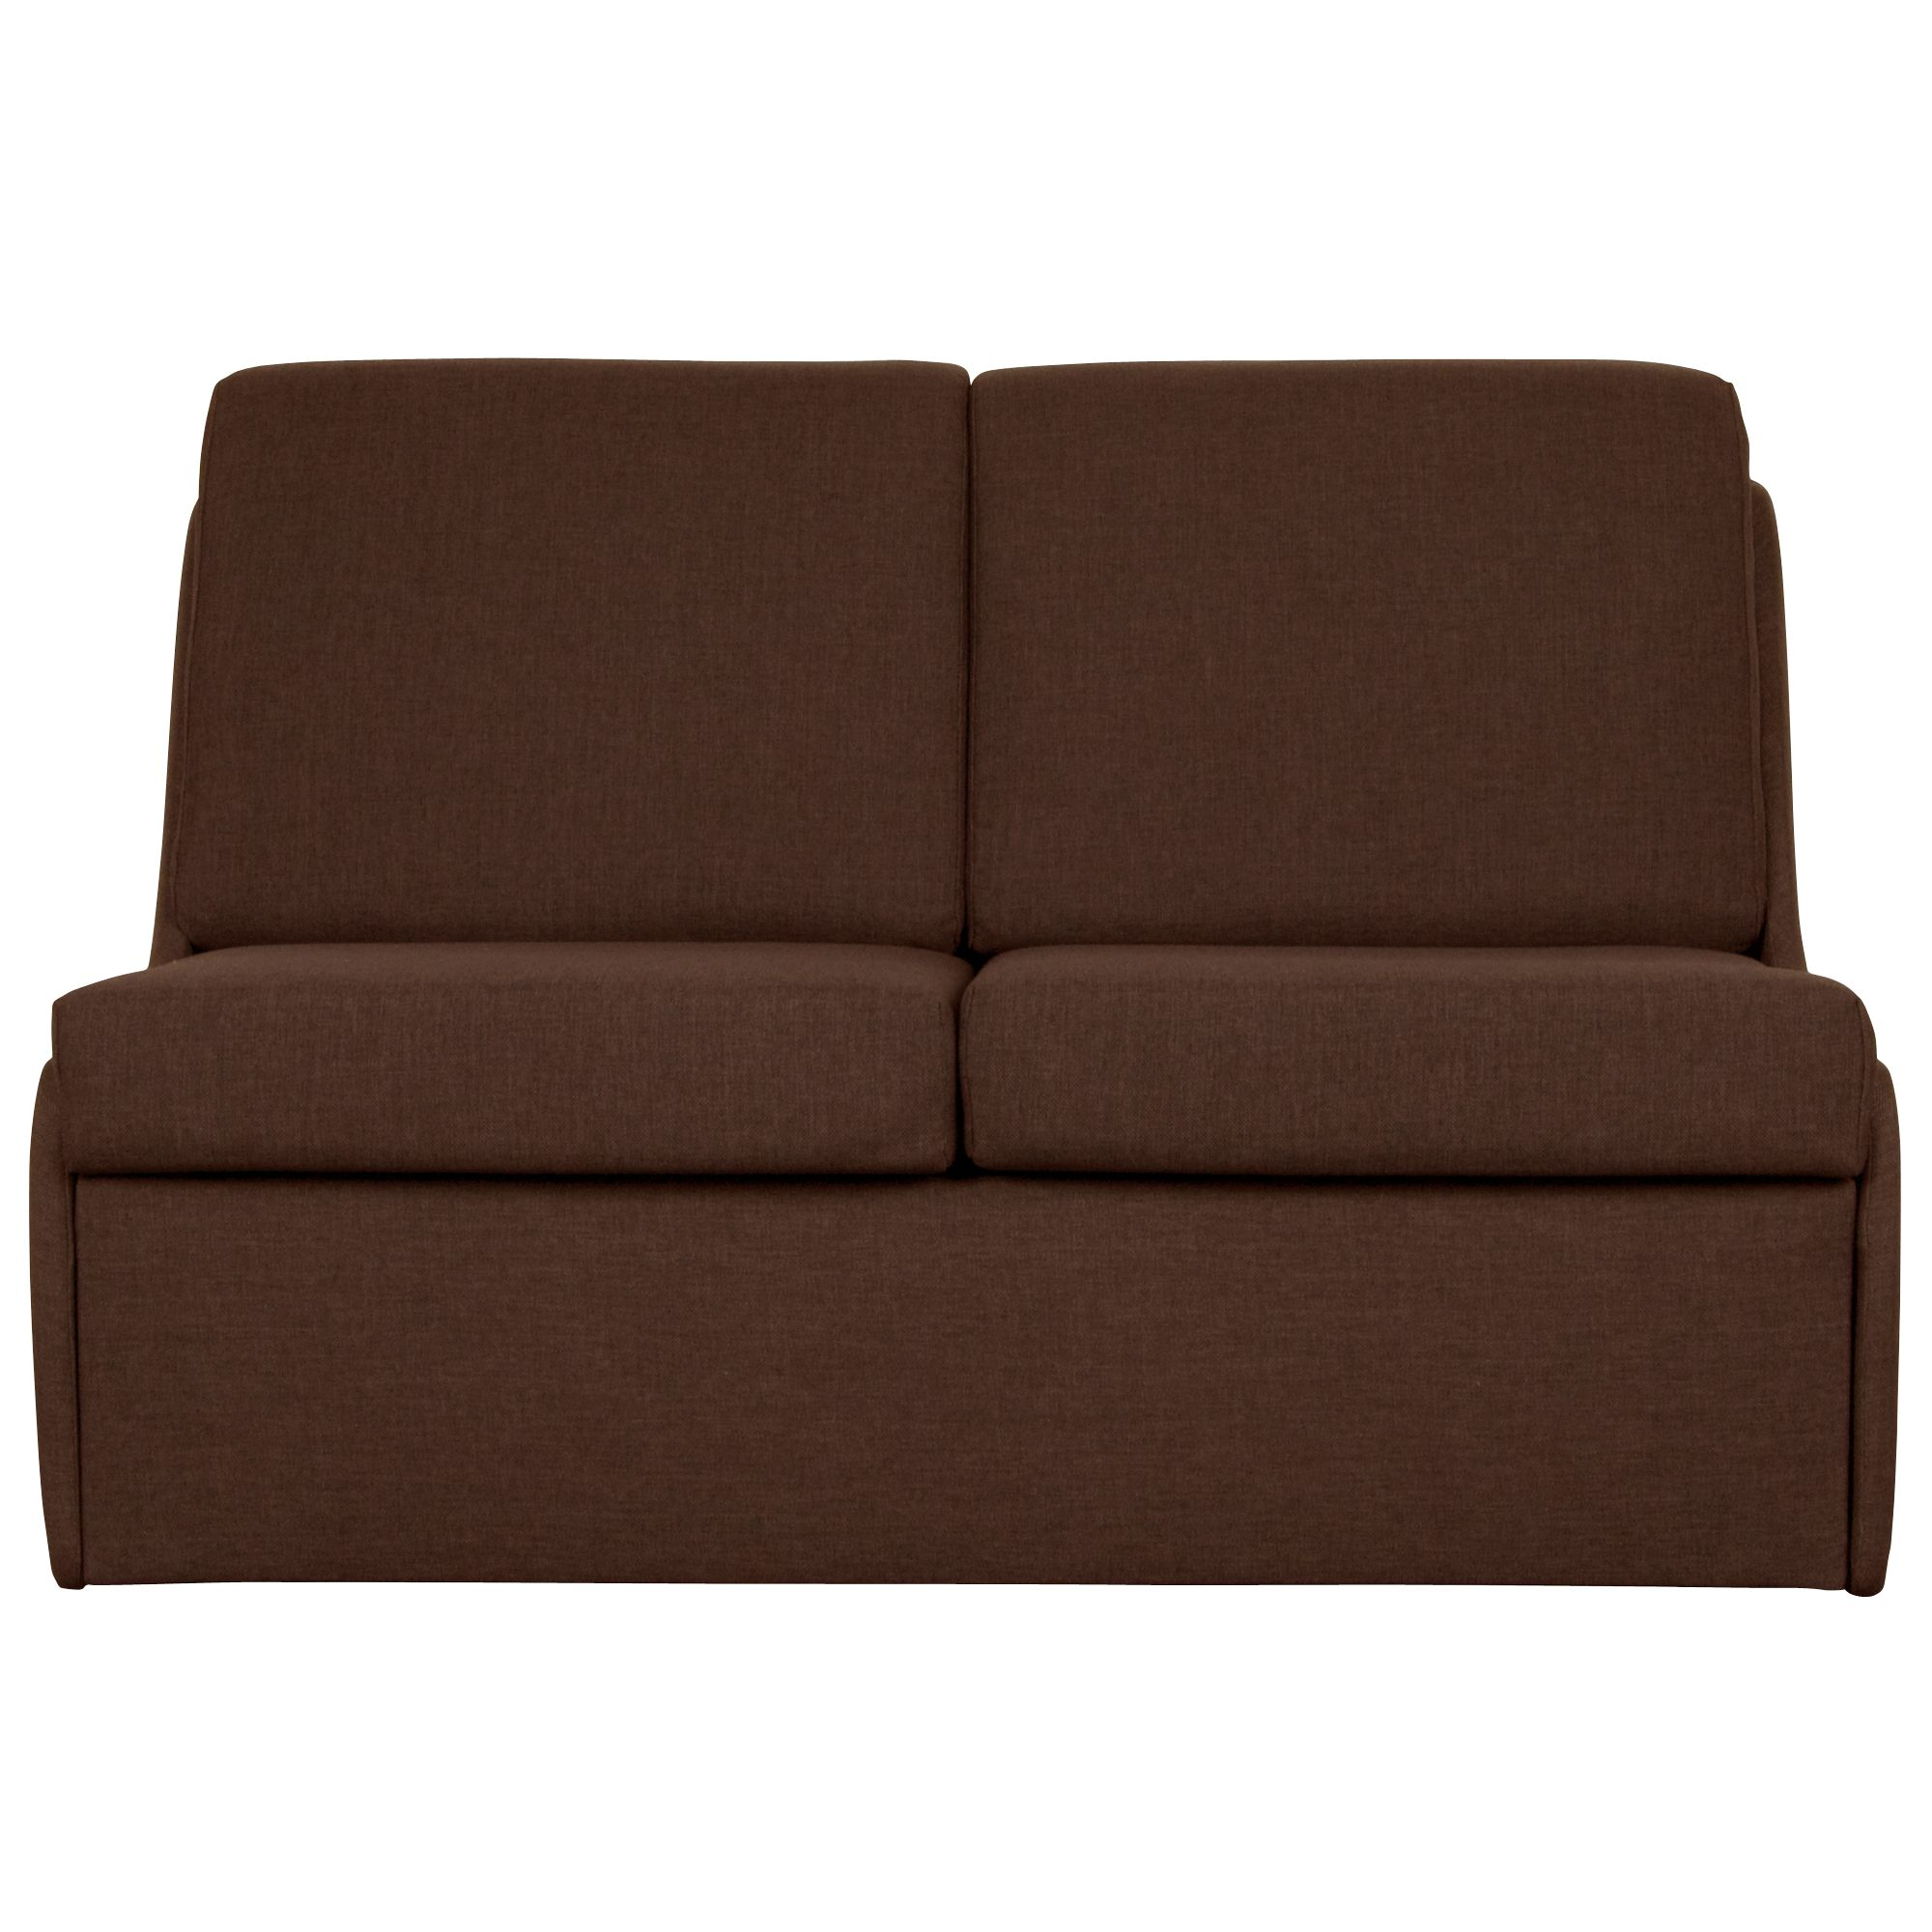 sacha large leather sofa bed madras chocolate best modern sleepers buztic john lewis design inspiration für